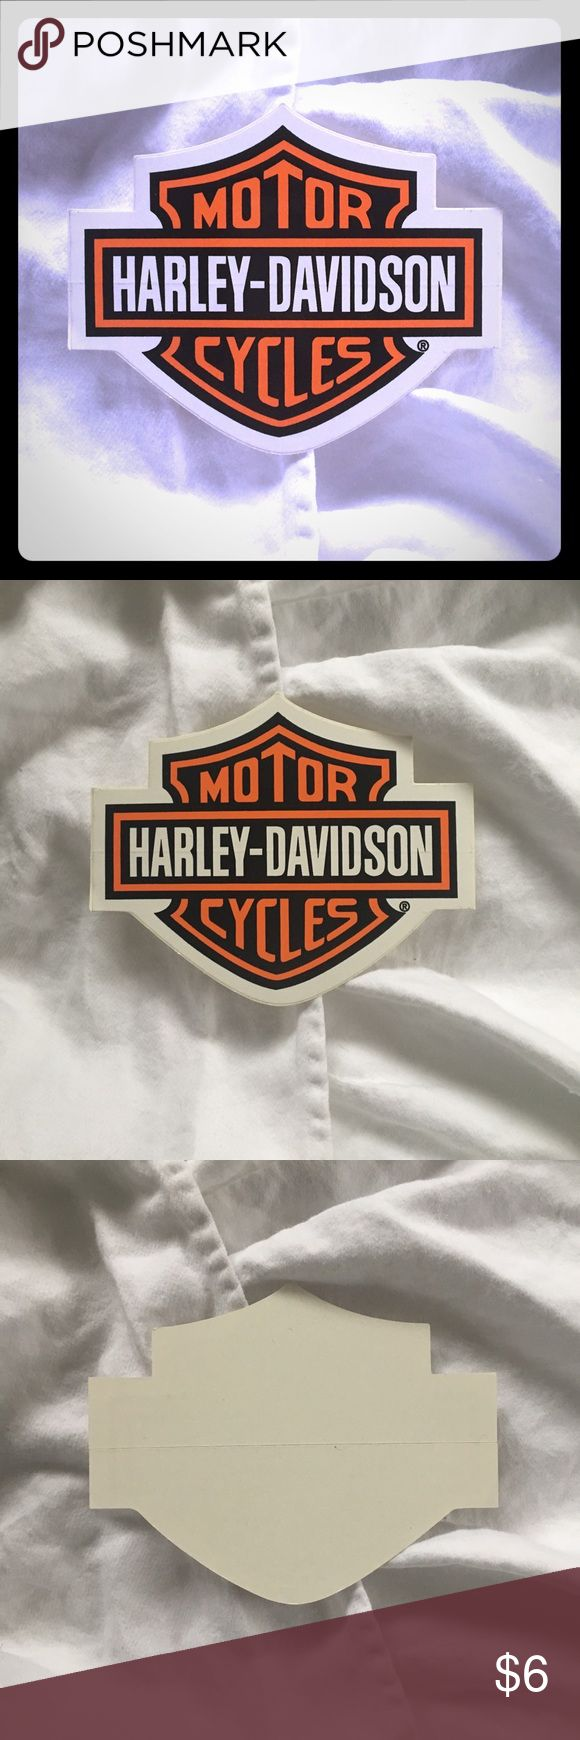 "NEW Harley-Davidson sticker New Hartley-Davidson biker sticker in perfect condition. Measures 4"" wide x 3 1/4"" high. Stick it on! Harley-Davidson Accessories"